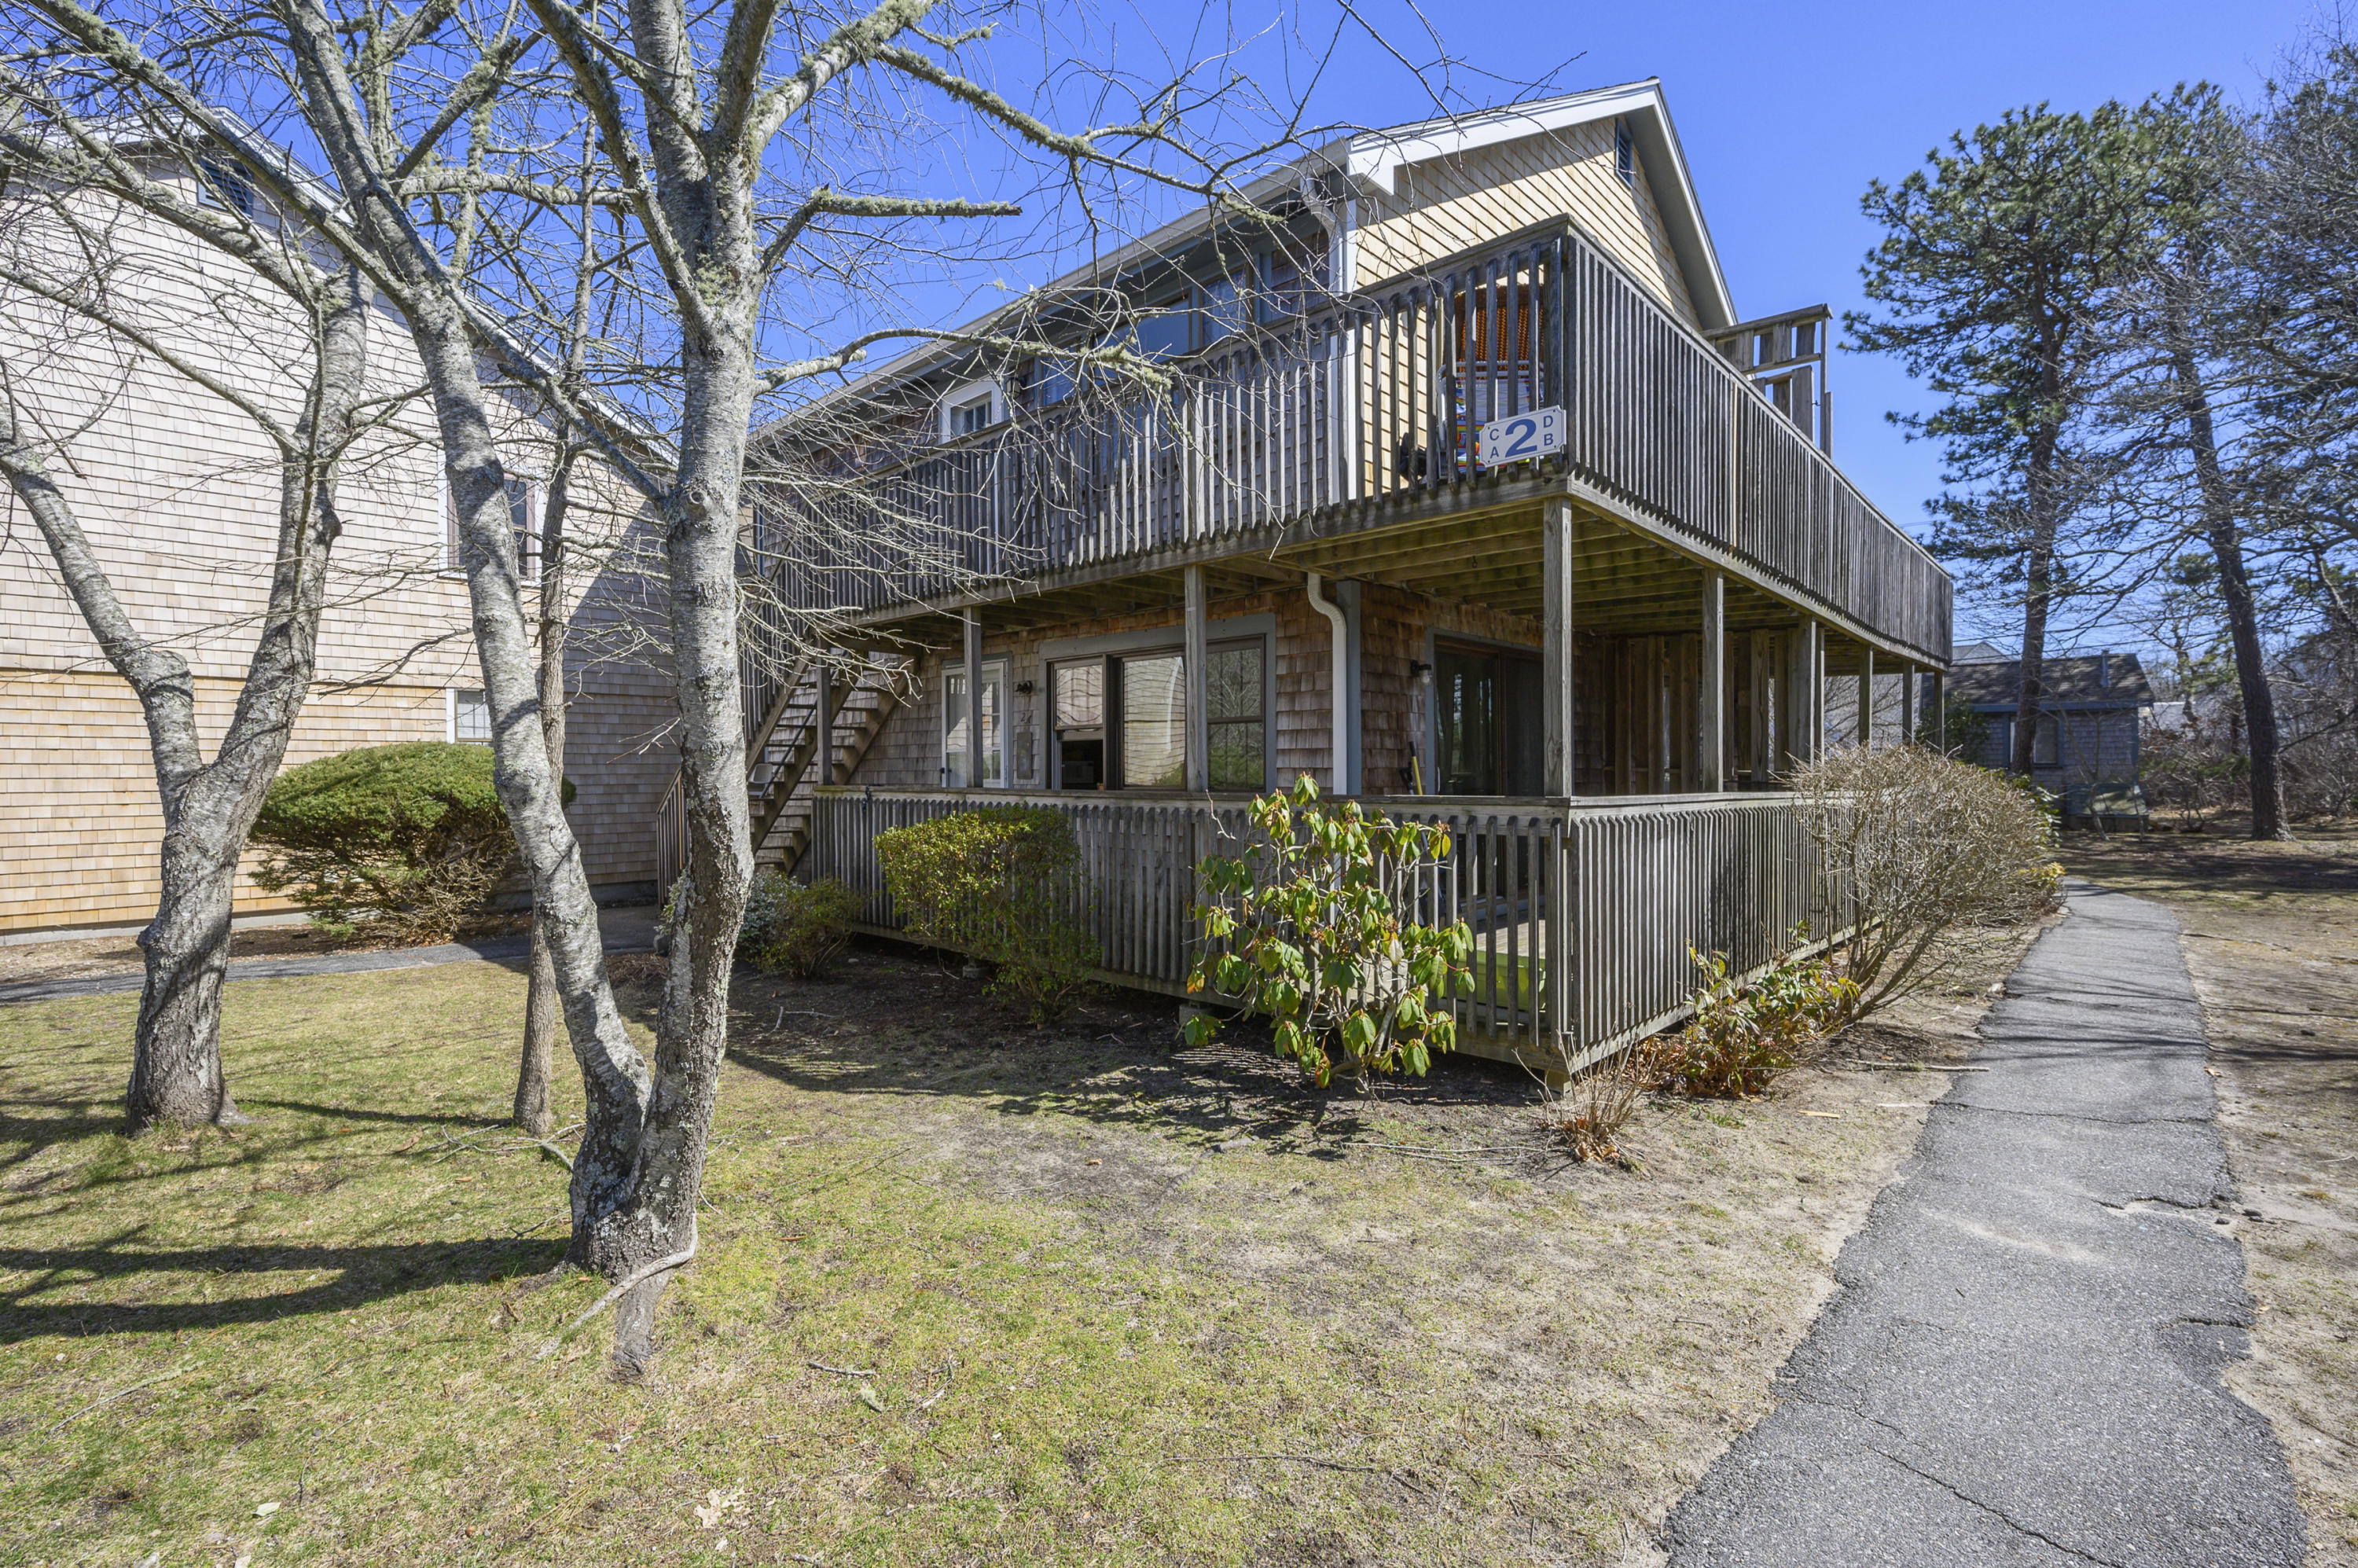 844 Route 28 South Yarmouth MA, 02664 details